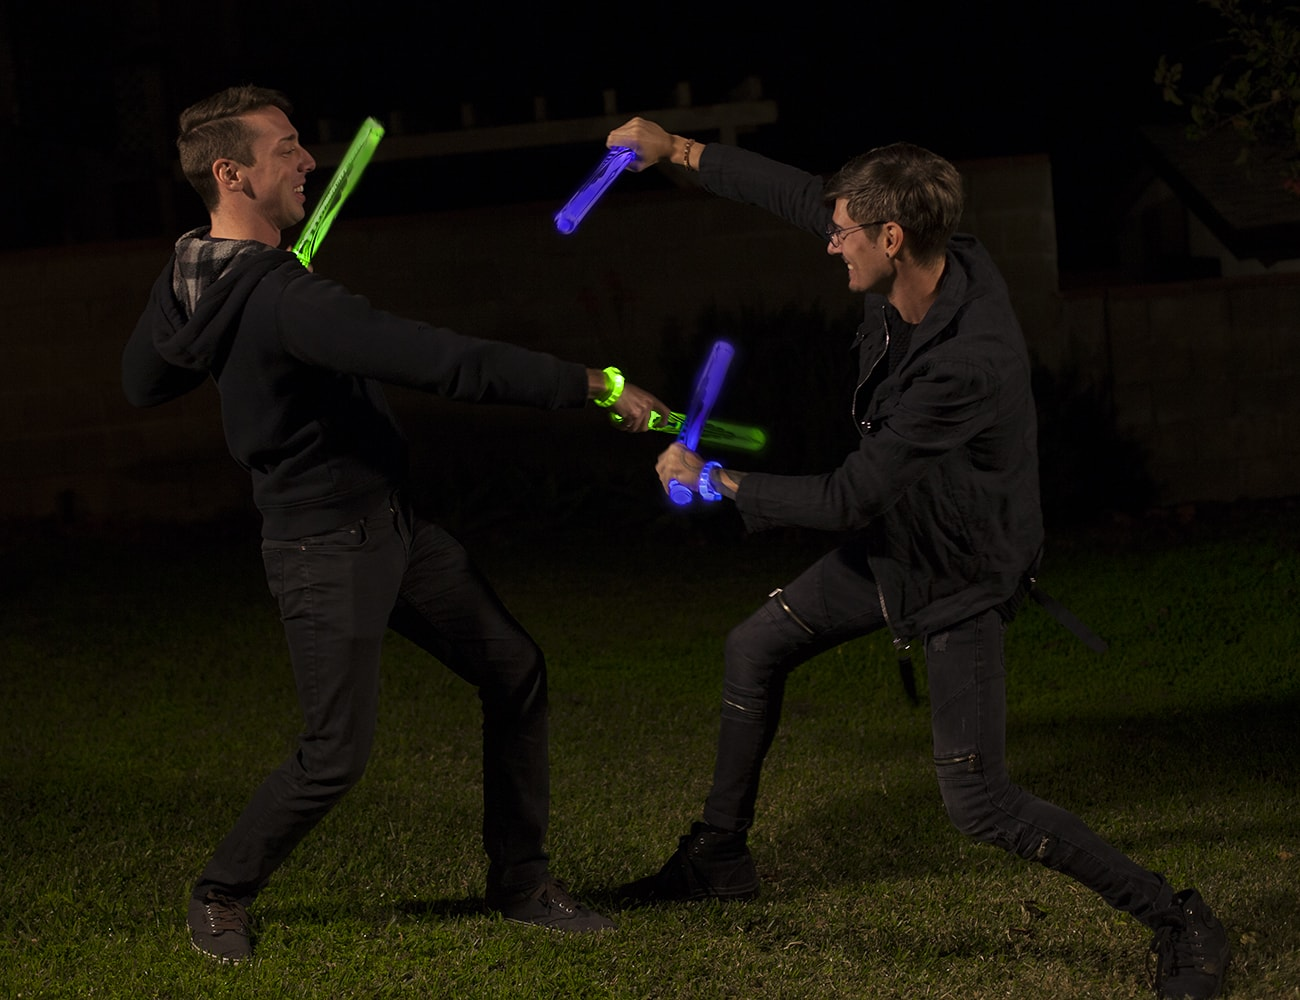 Glow+Battle+Interactive+Light-Up+Sword+Game